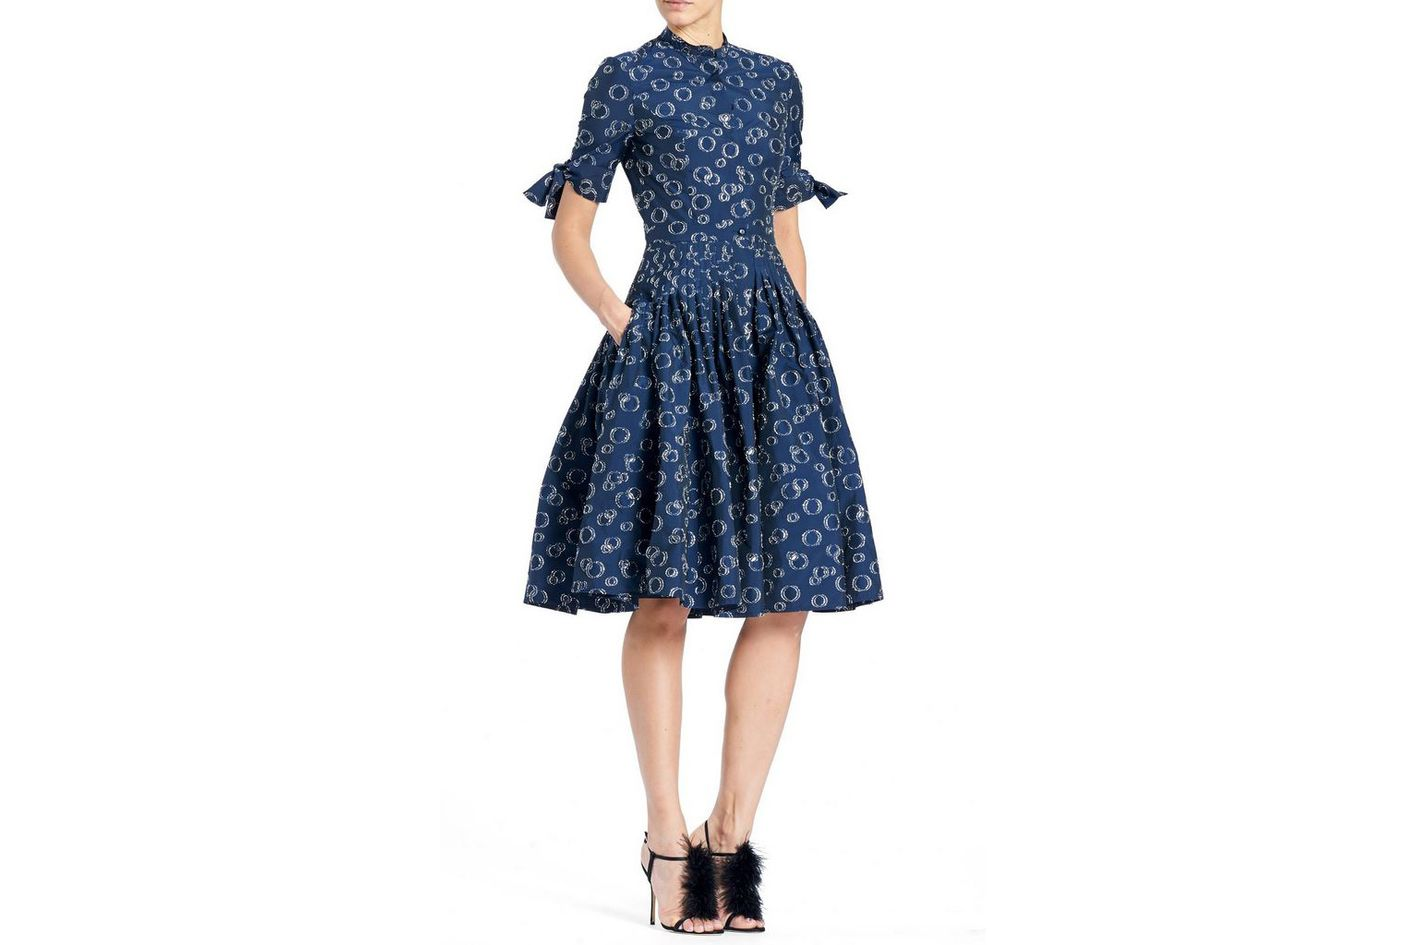 Carolina Herrera Bubble Dress